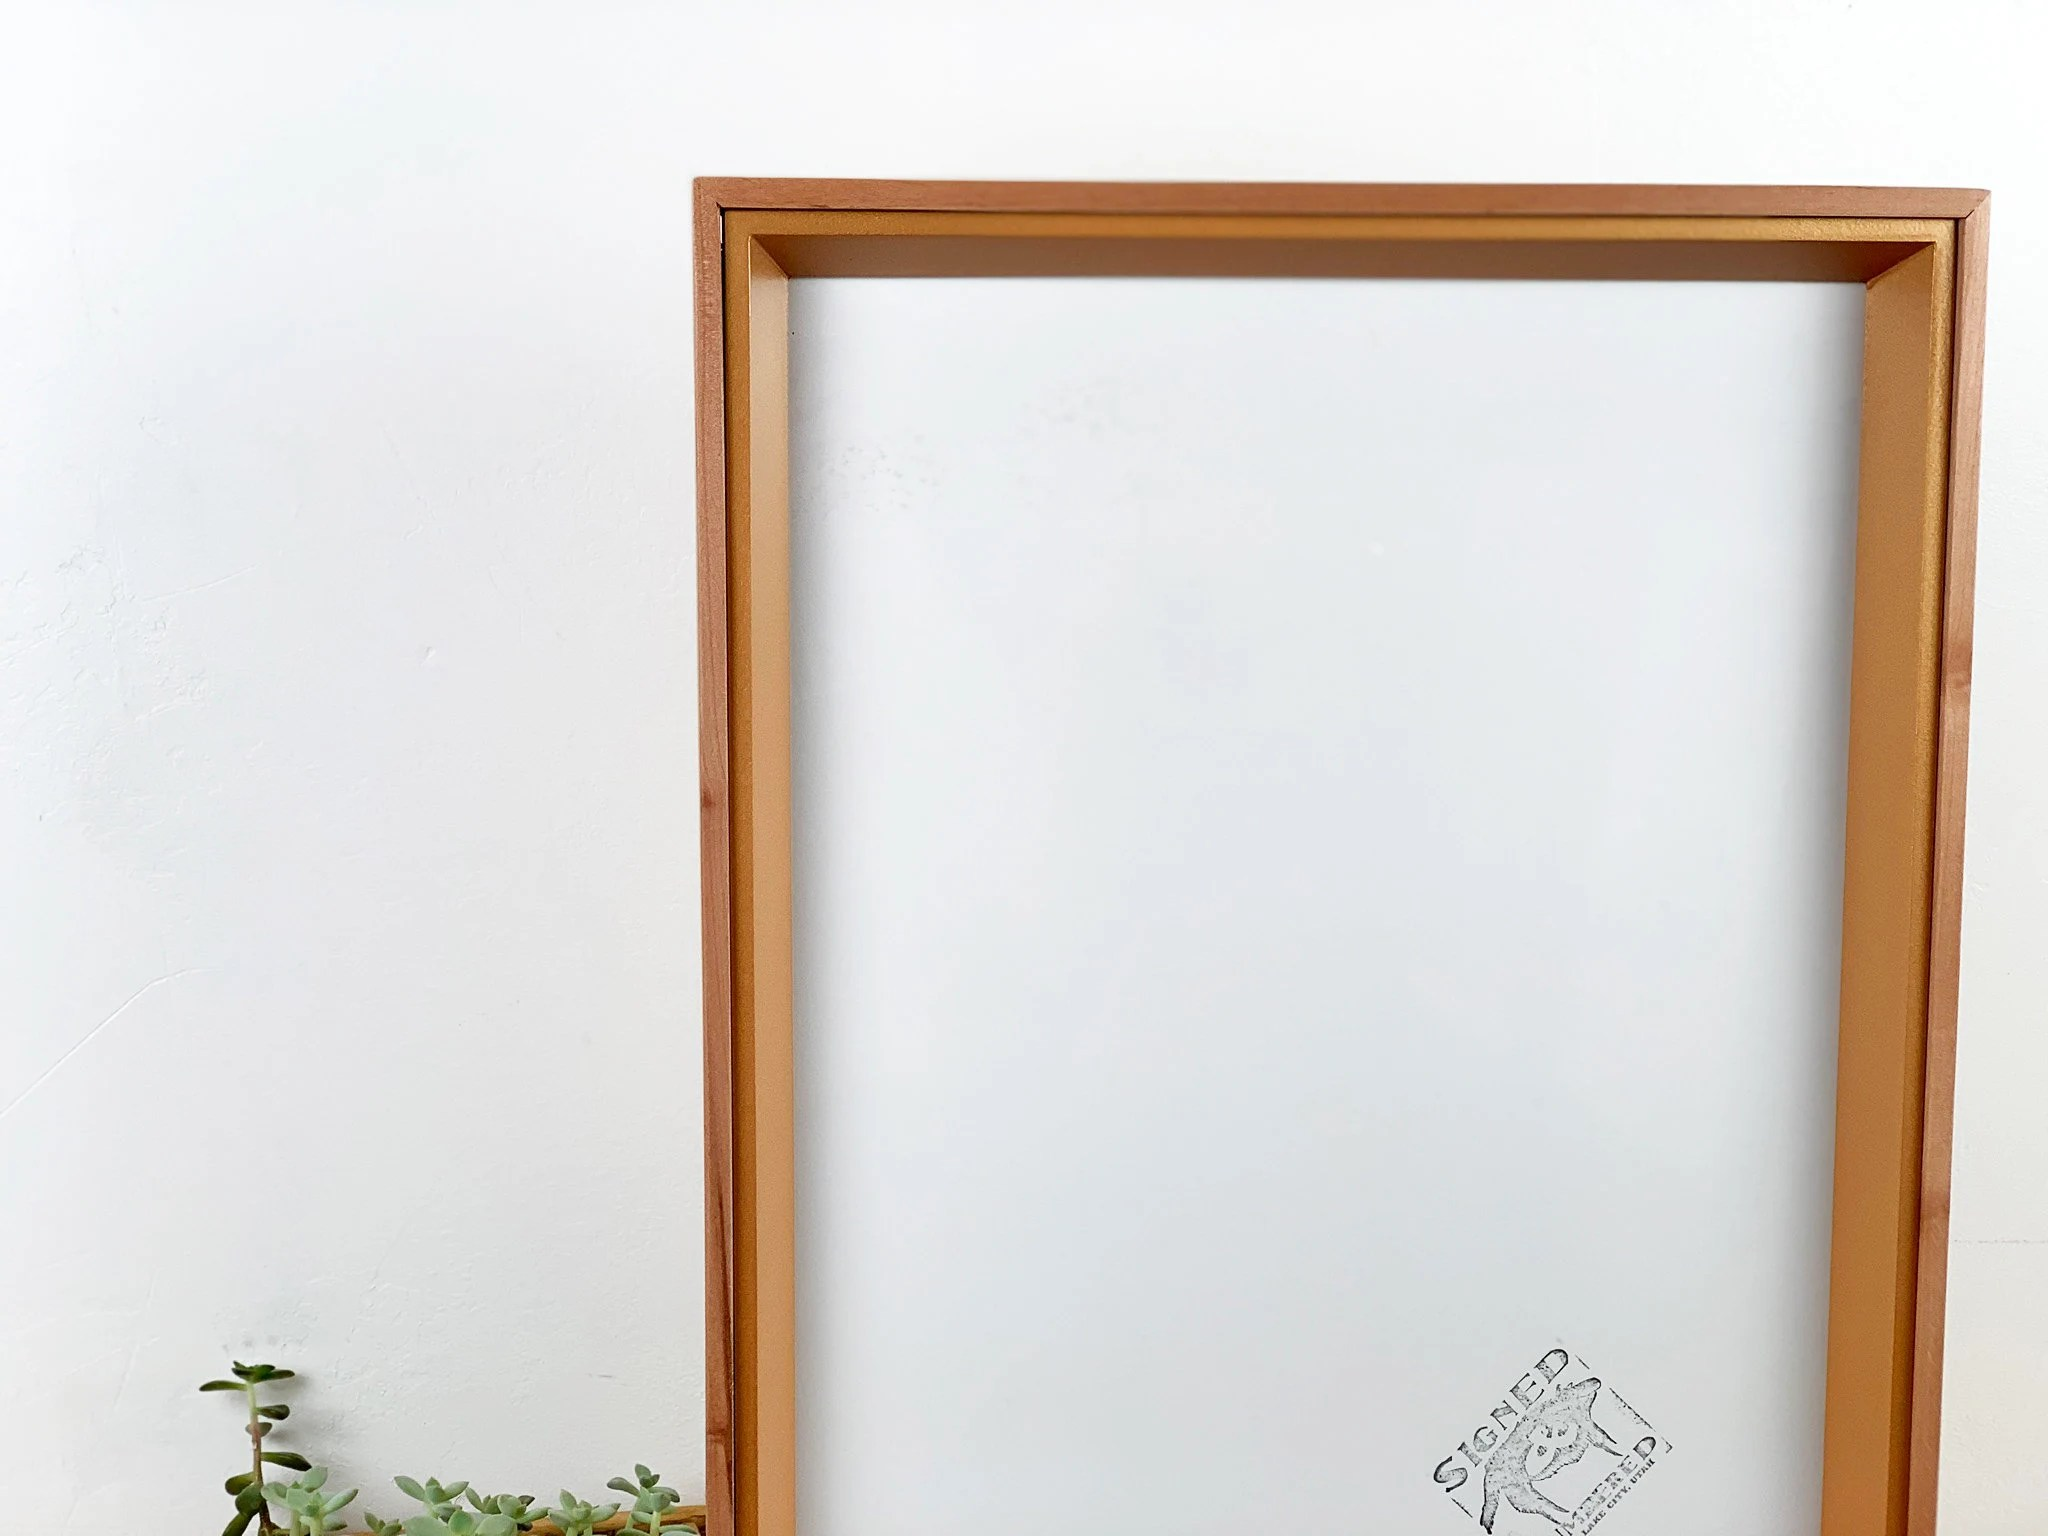 14x20 picture frame in park slope build